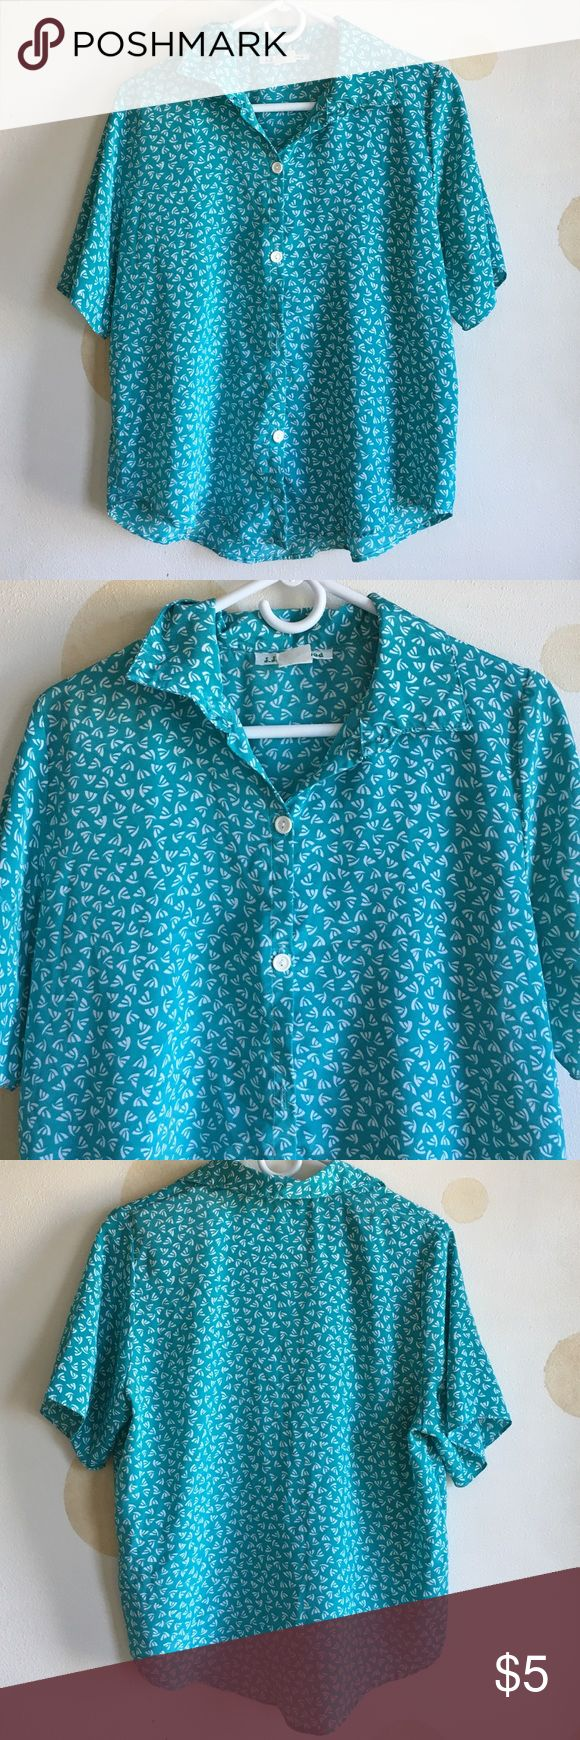 Women's sailor button down shirt Collar shirt button down. Fits true to size. No modeling no trades Tops Blouses